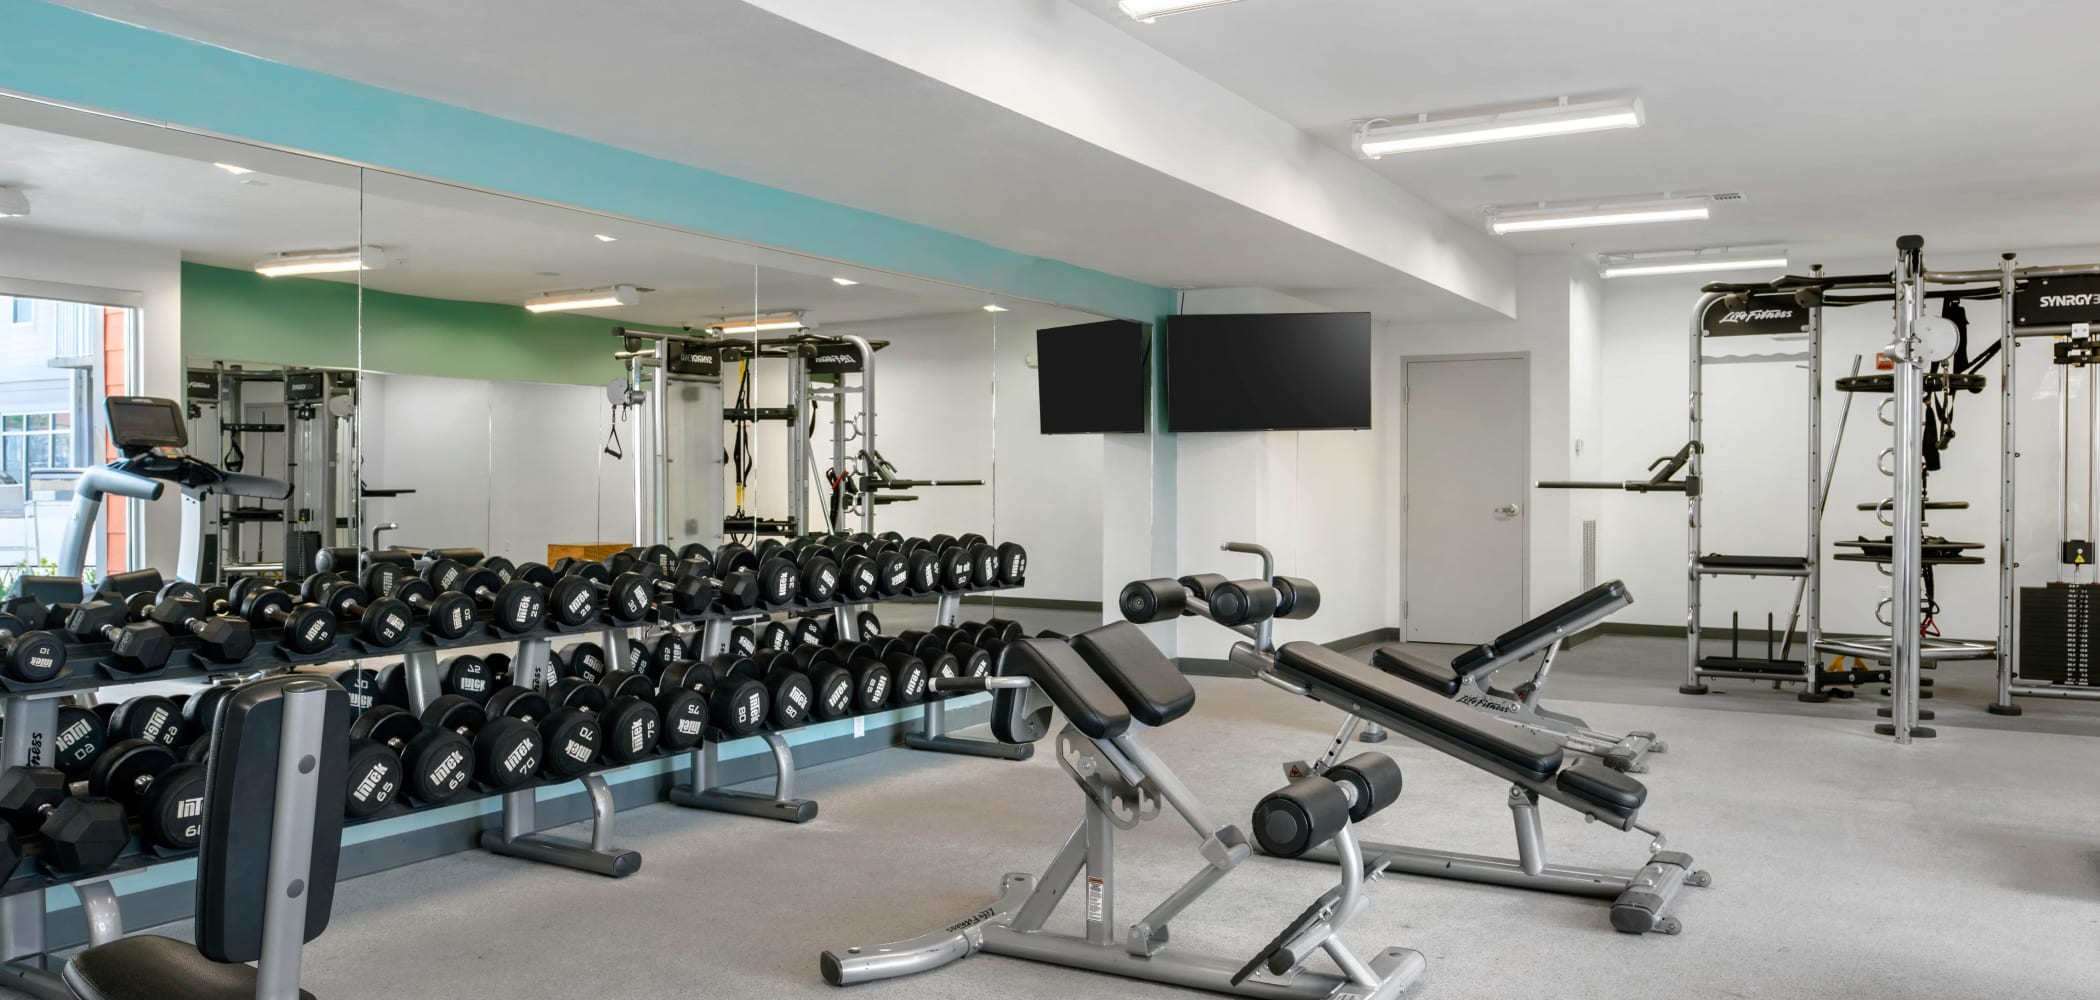 State-of-the-art fitness center at Onyx in Tallahassee, Florida